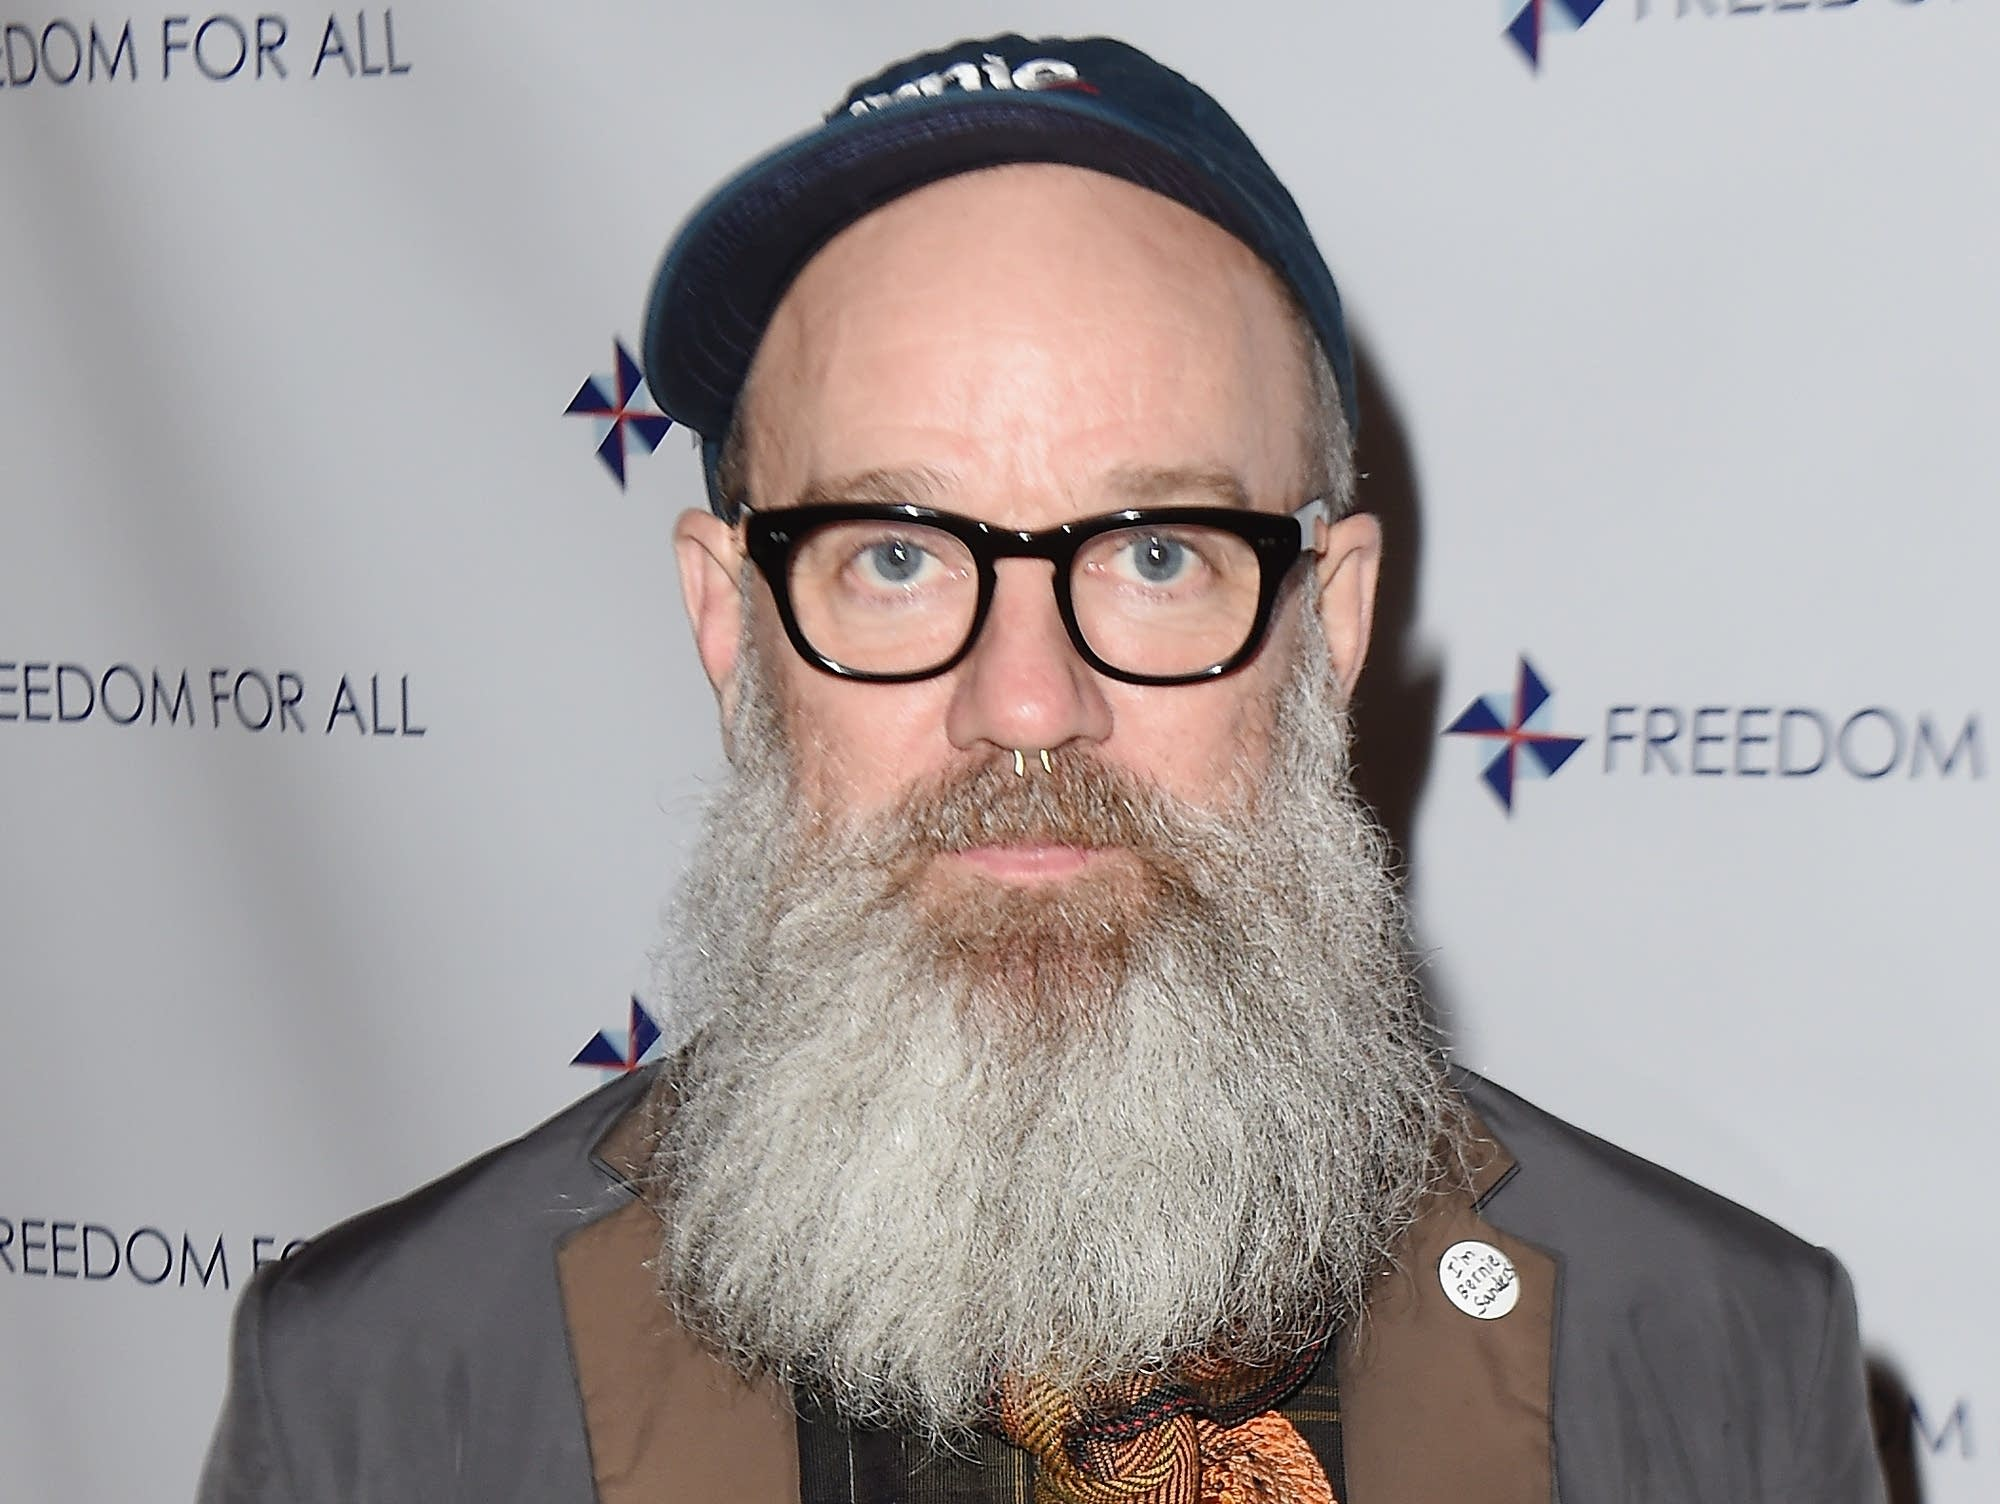 Michael Stipe attends the 2016 Freedom For All Gala